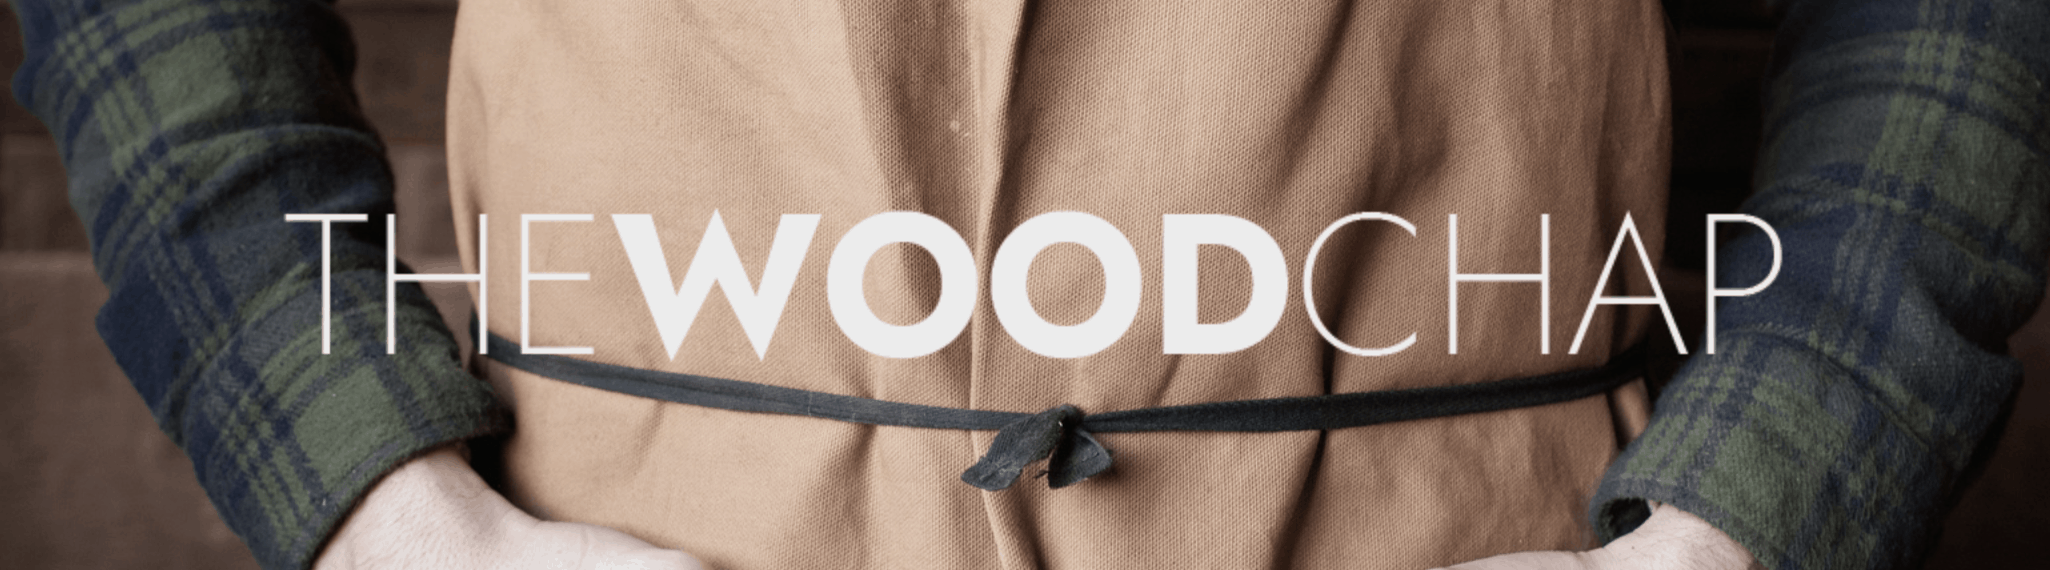 Woodworker logo: The Wood Chap